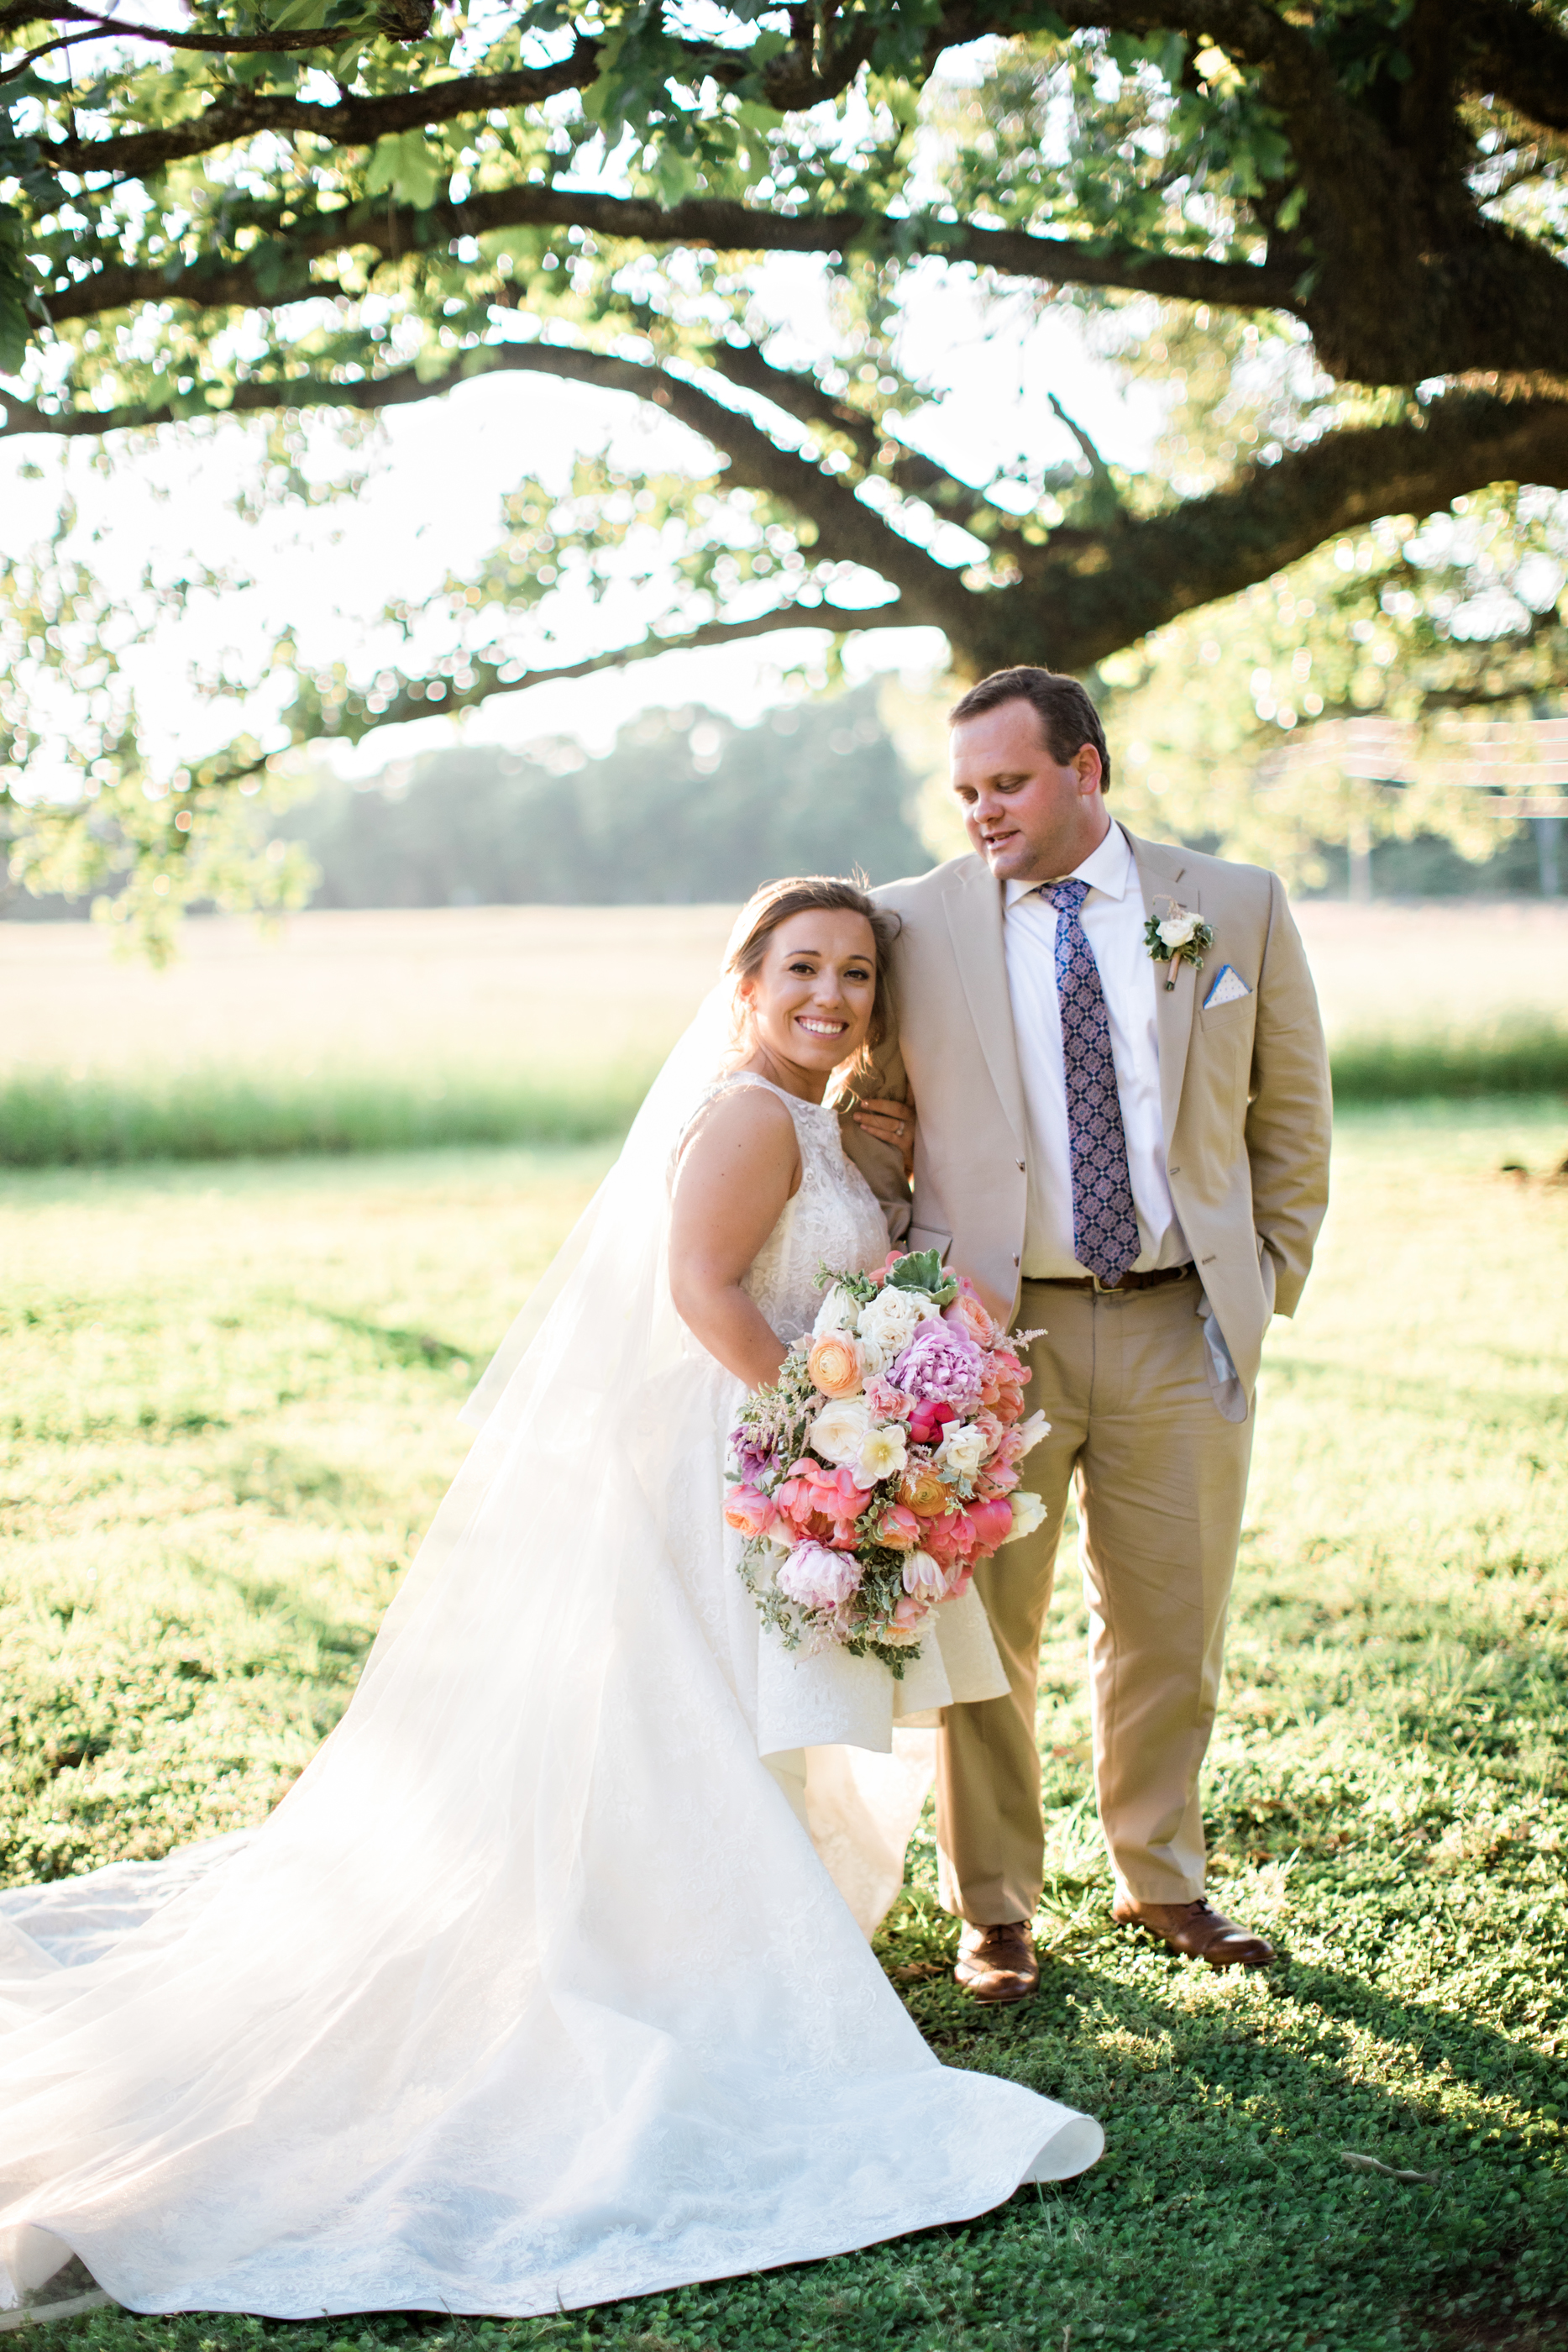 Alabama-Wedding-Photographers-Nick-Drollette-Hailey and Reed-147.jpg